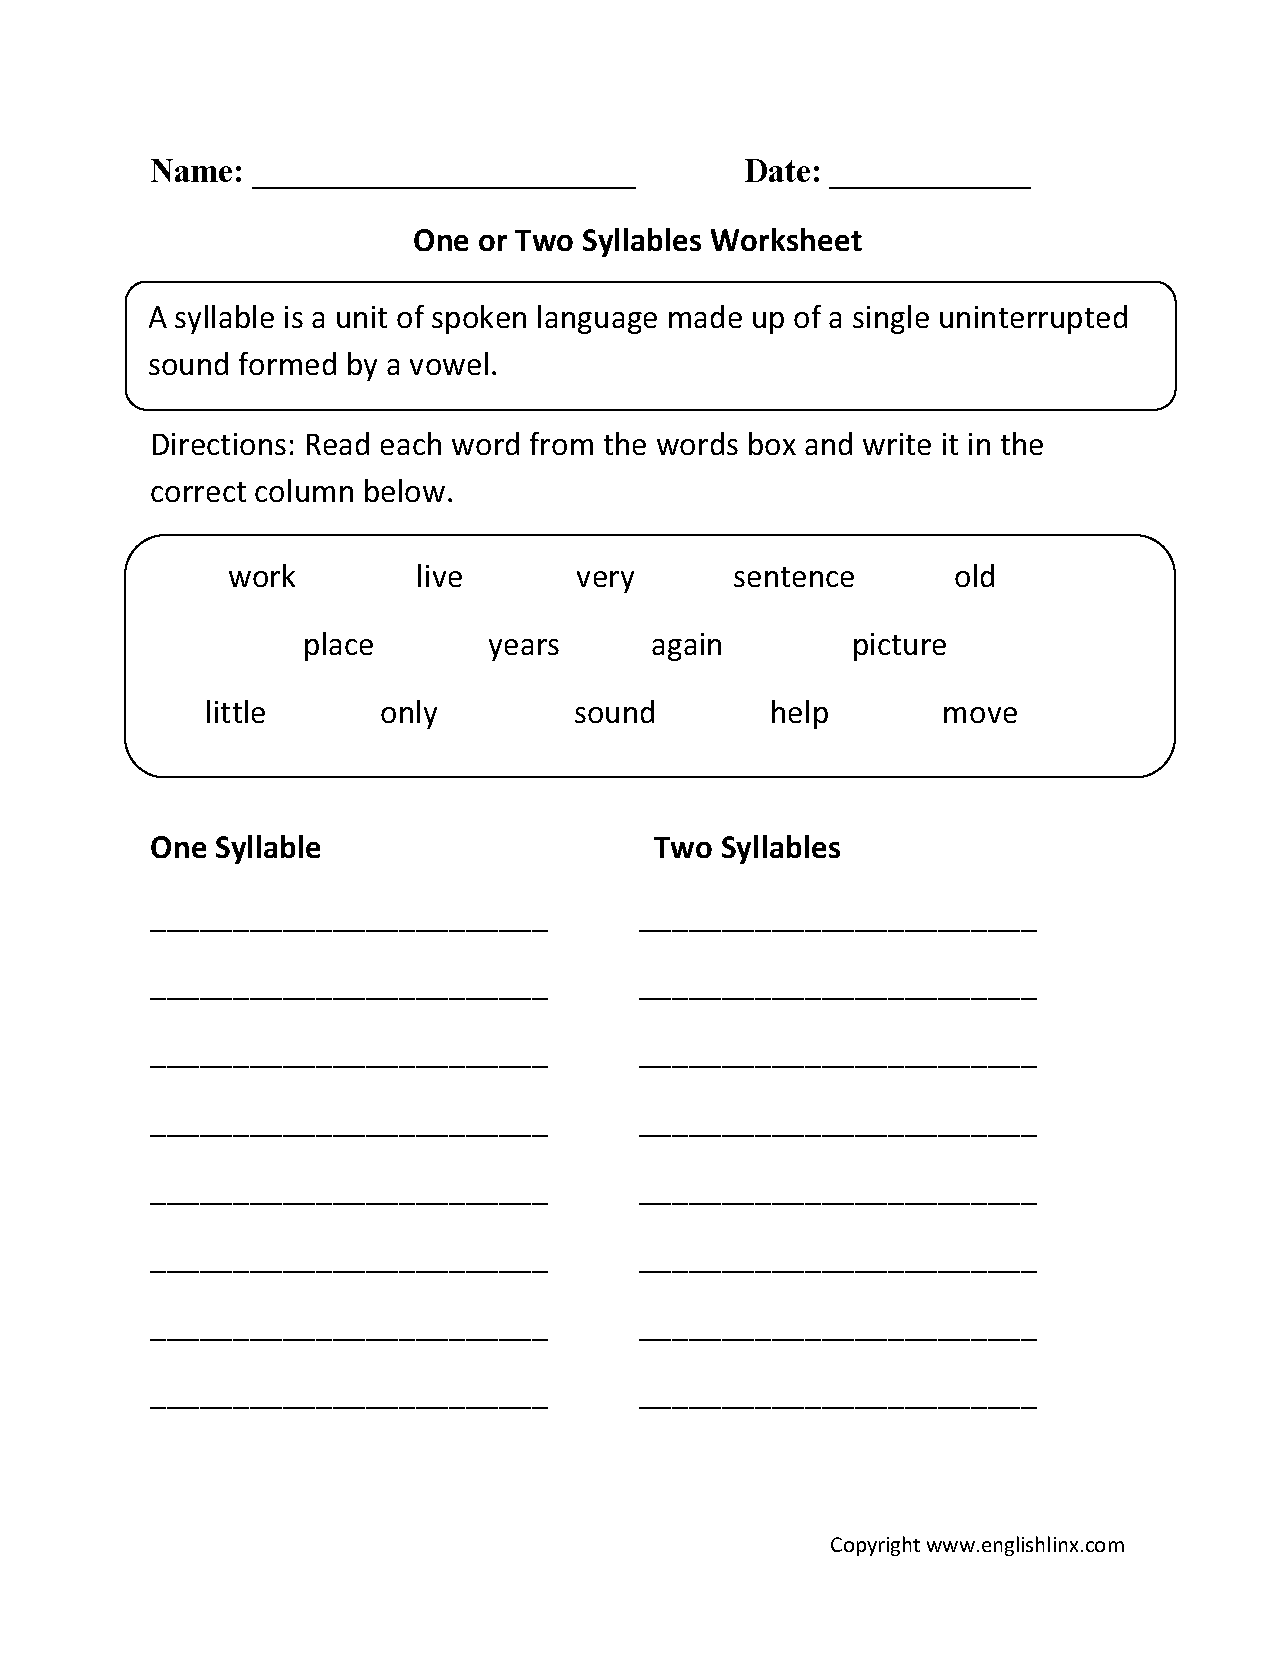 Worksheets Syllables Worksheet englishlinx com syllables worksheets worksheets